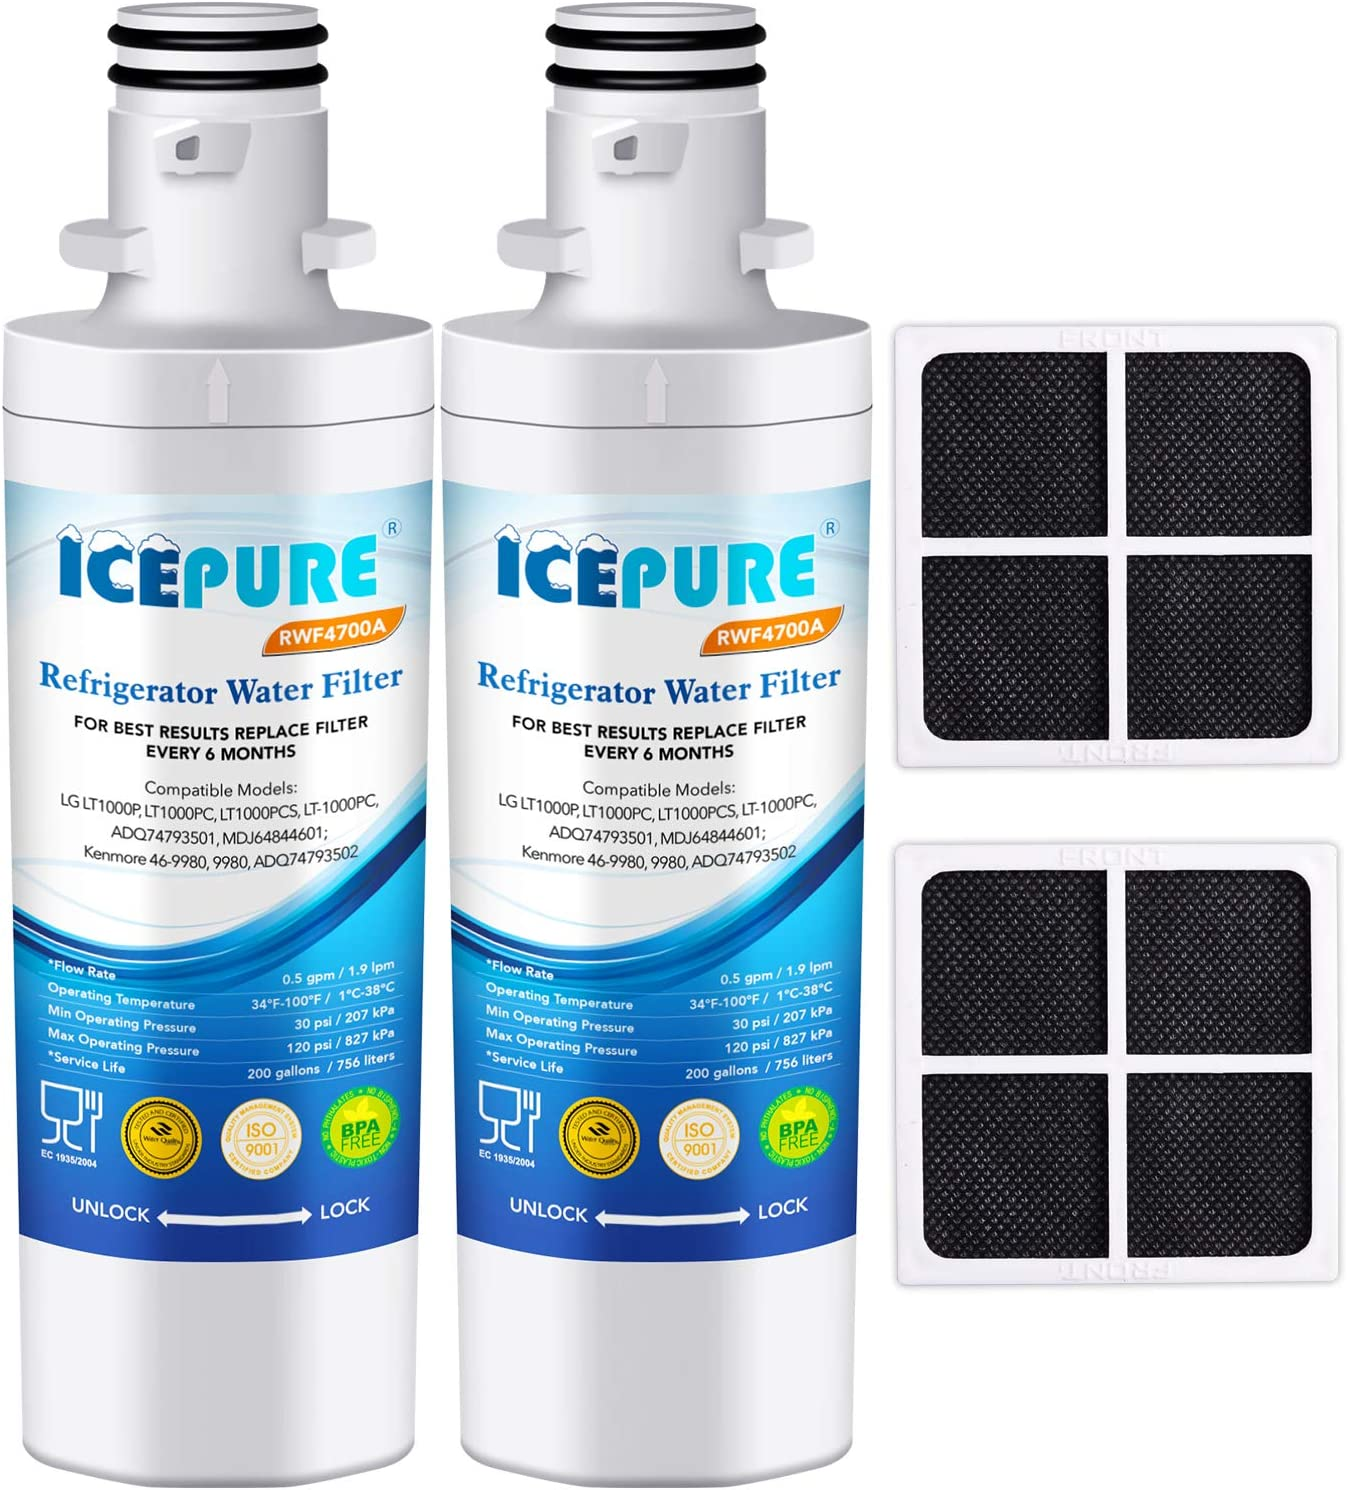 ICEPURE LT1000P Refrigerator Water Filter and Air Filter, Compatible with LG LT1000P, LT1000PC, MDJ64844601, Kenmore 46-9980, 9980, ADQ74793501, ADQ74793502 and LT120F Combo, 2PACK